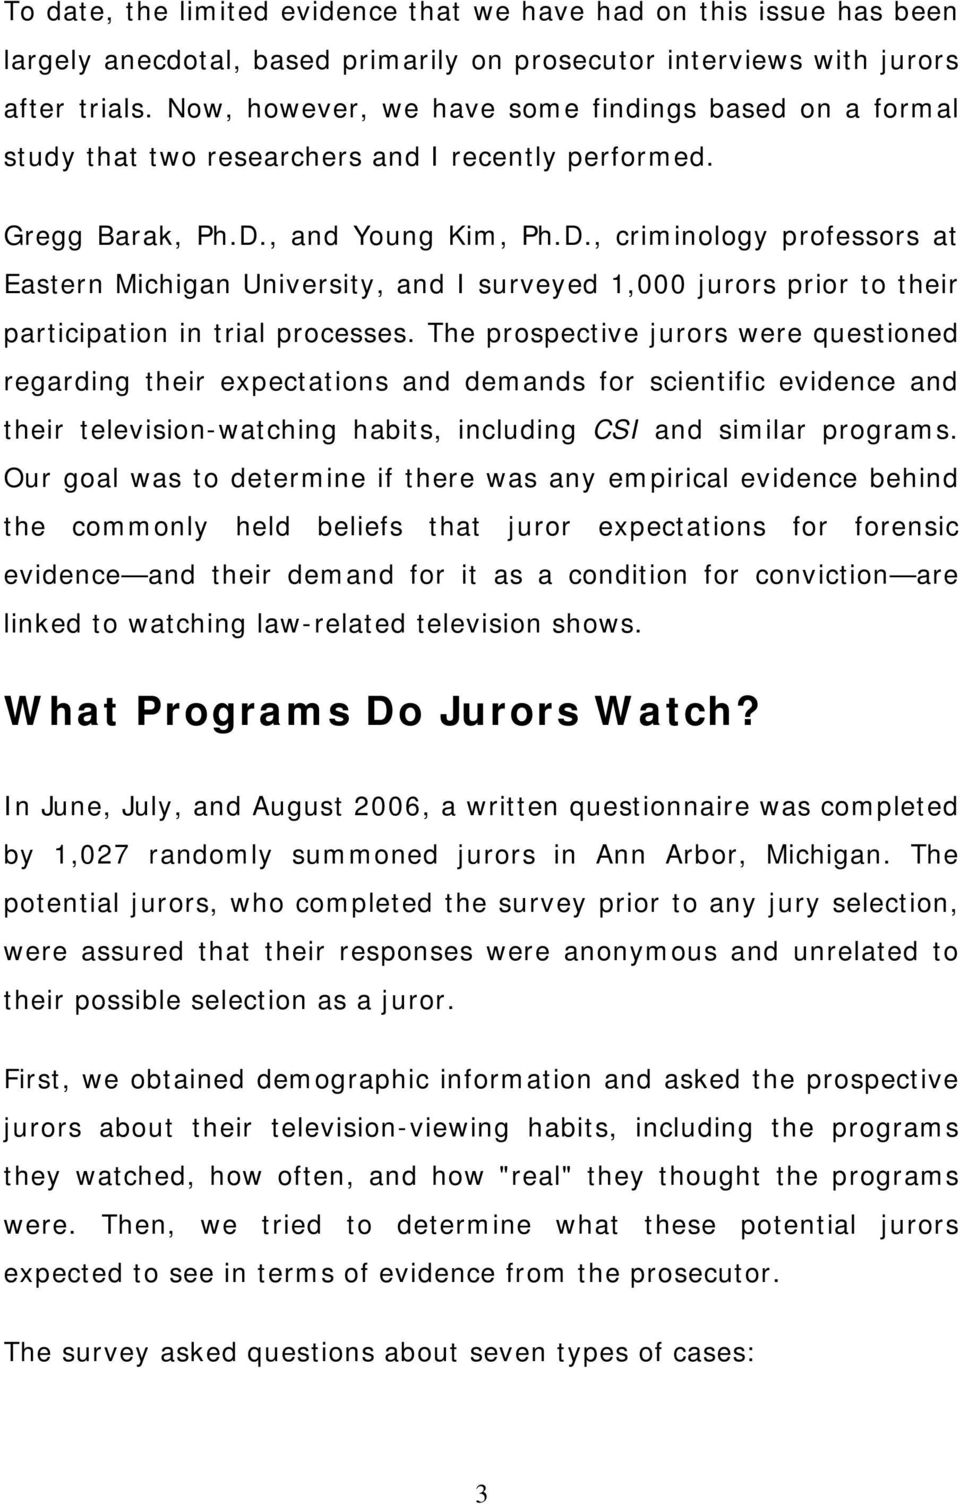 , and Young Kim, Ph.D., criminology professors at Eastern Michigan University, and I surveyed 1,000 jurors prior to their participation in trial processes.